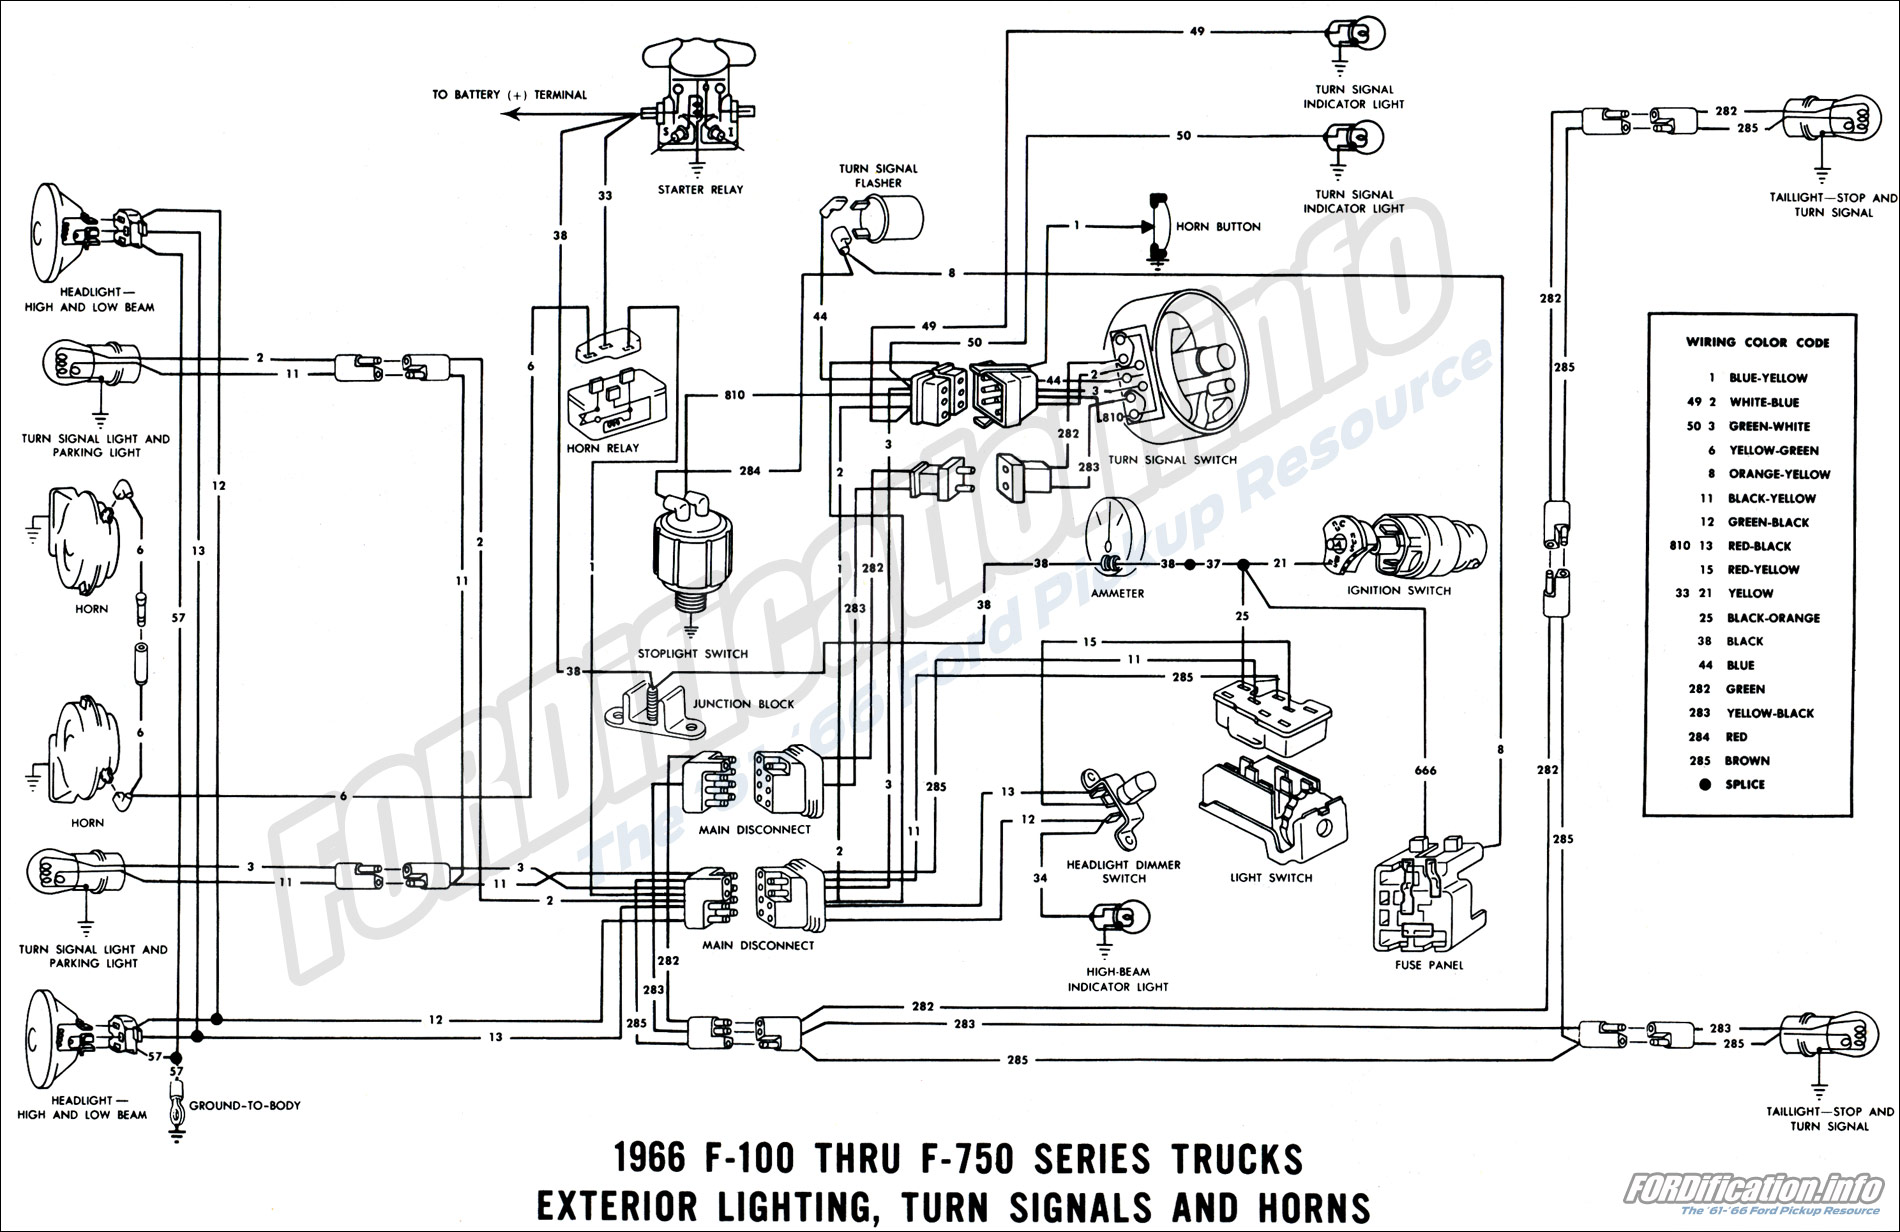 1966 ford pickup wiring diagram example electrical wiring diagram u2022 rh huntervalleyhotels co 1969 Ford F100 Wiring Diagram 1955 Ford F100 Wiring Diagram